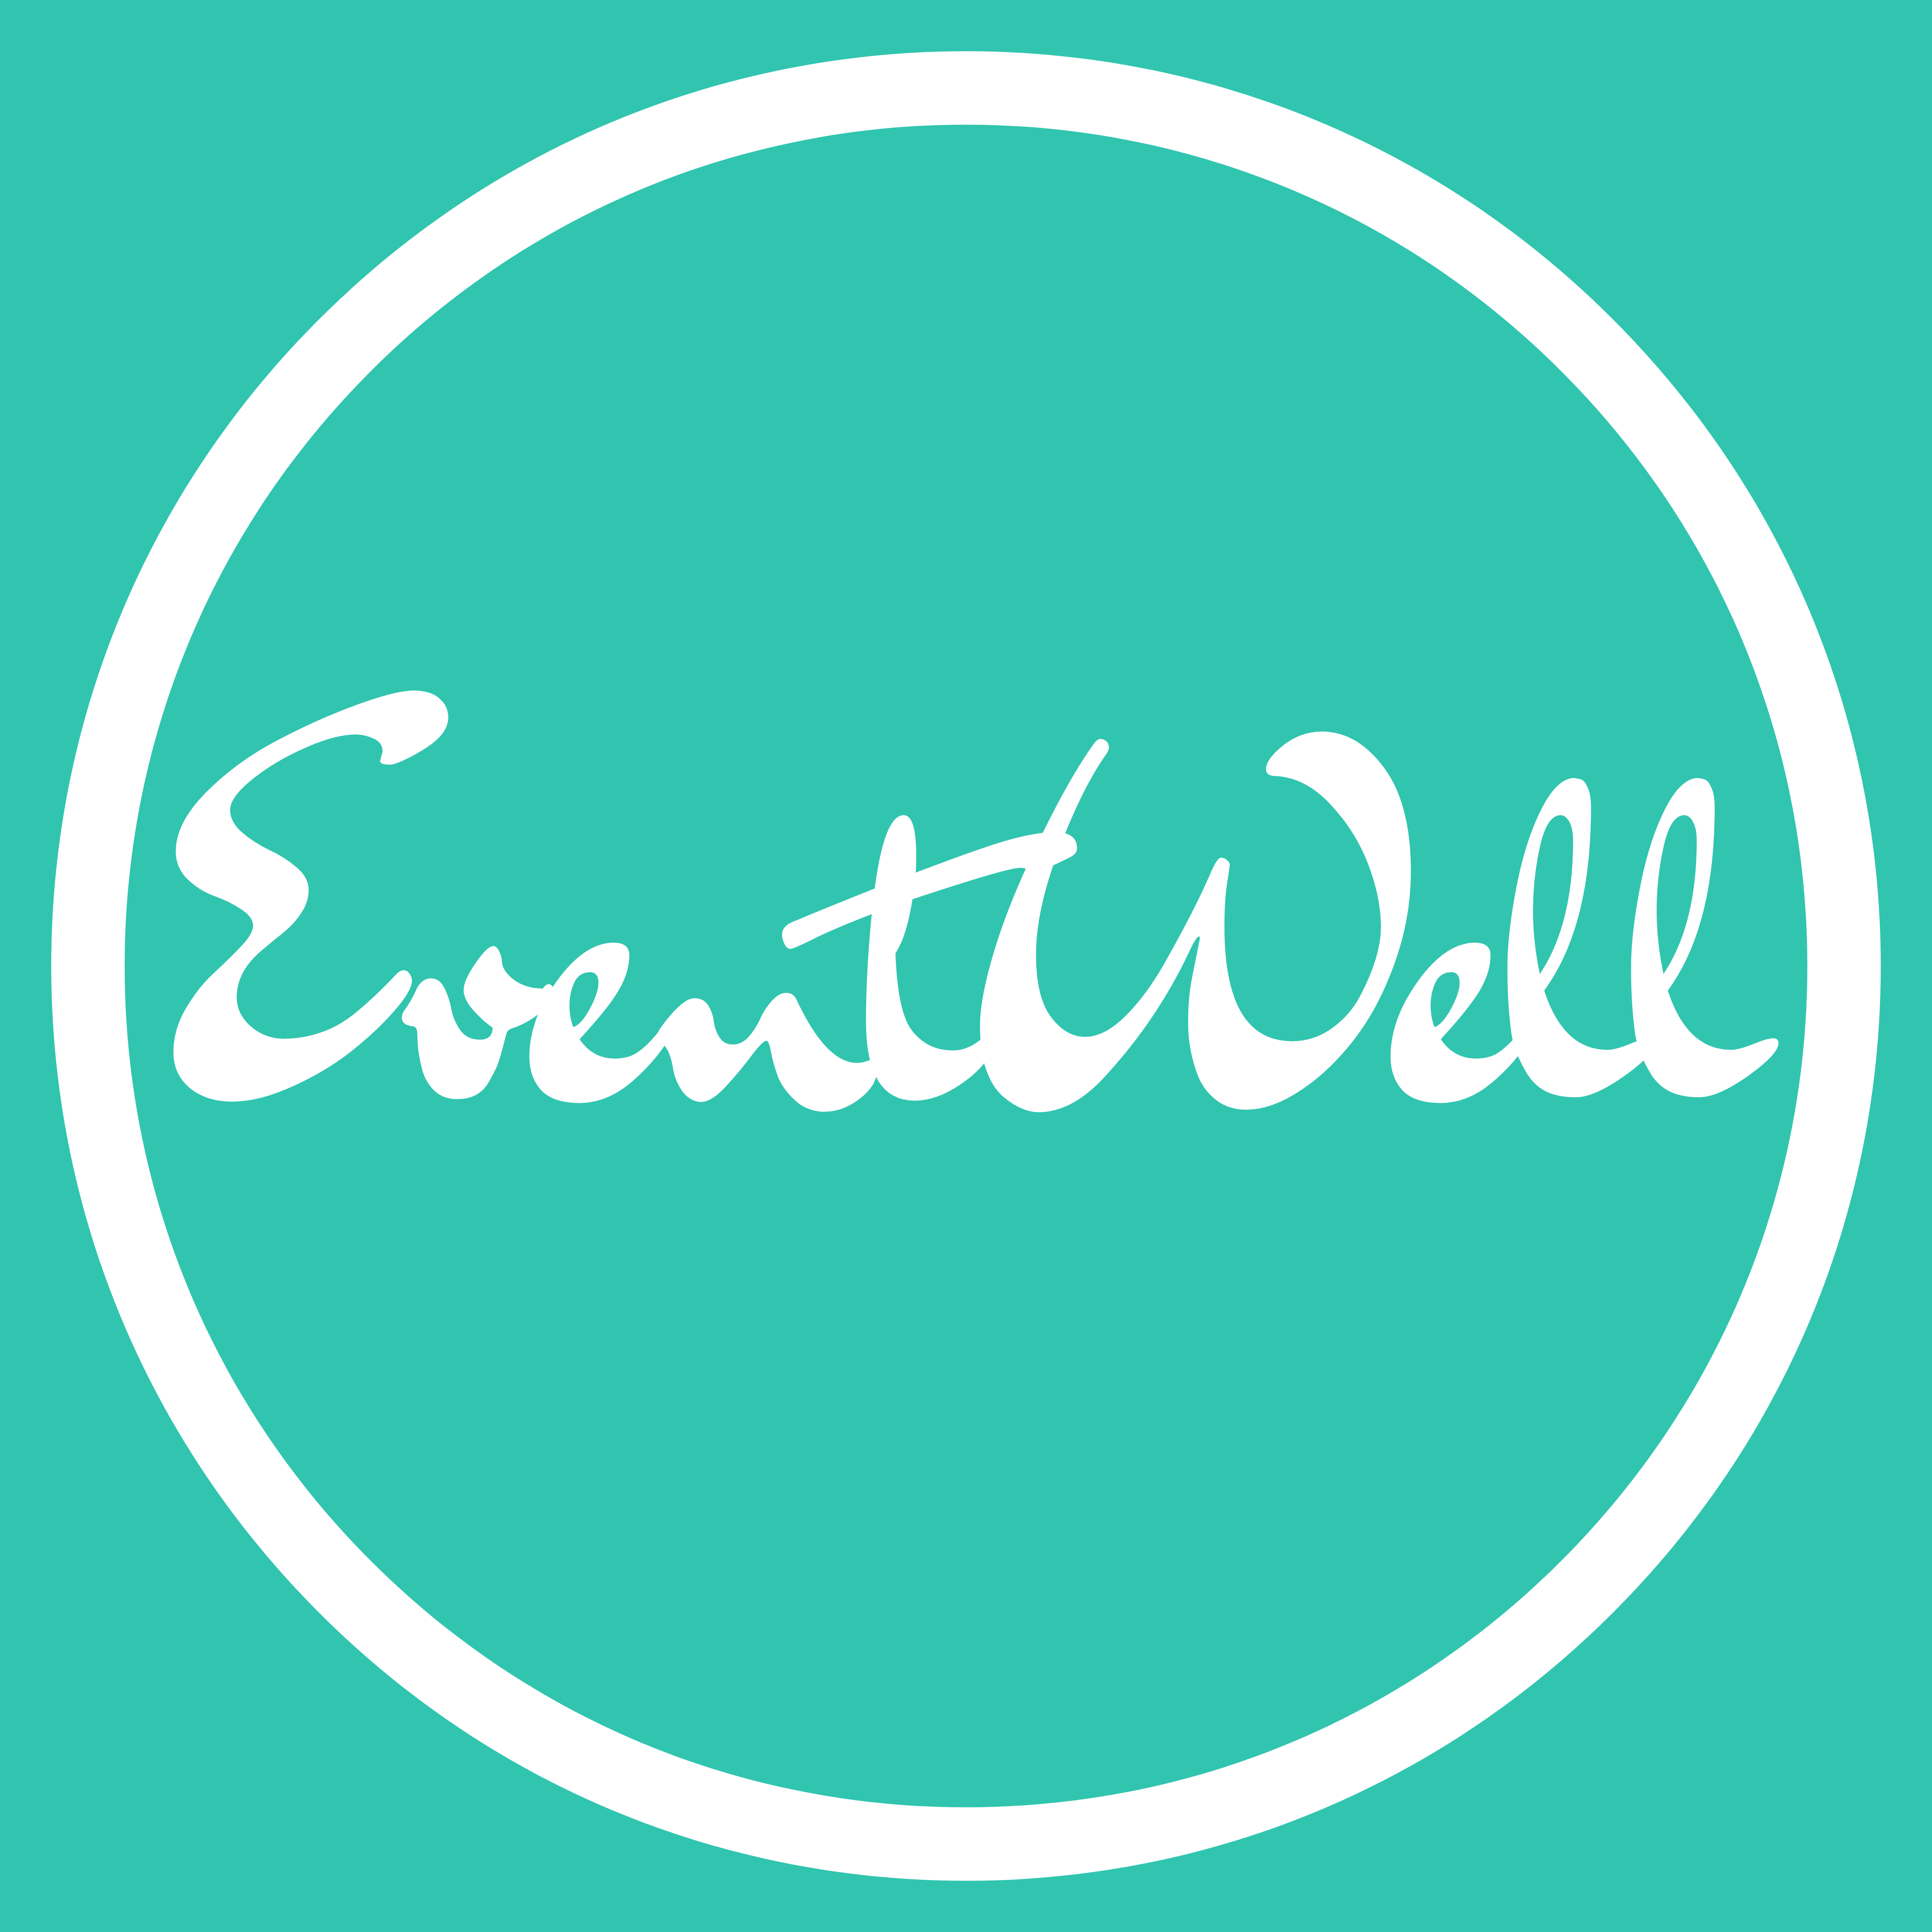 Eventwell